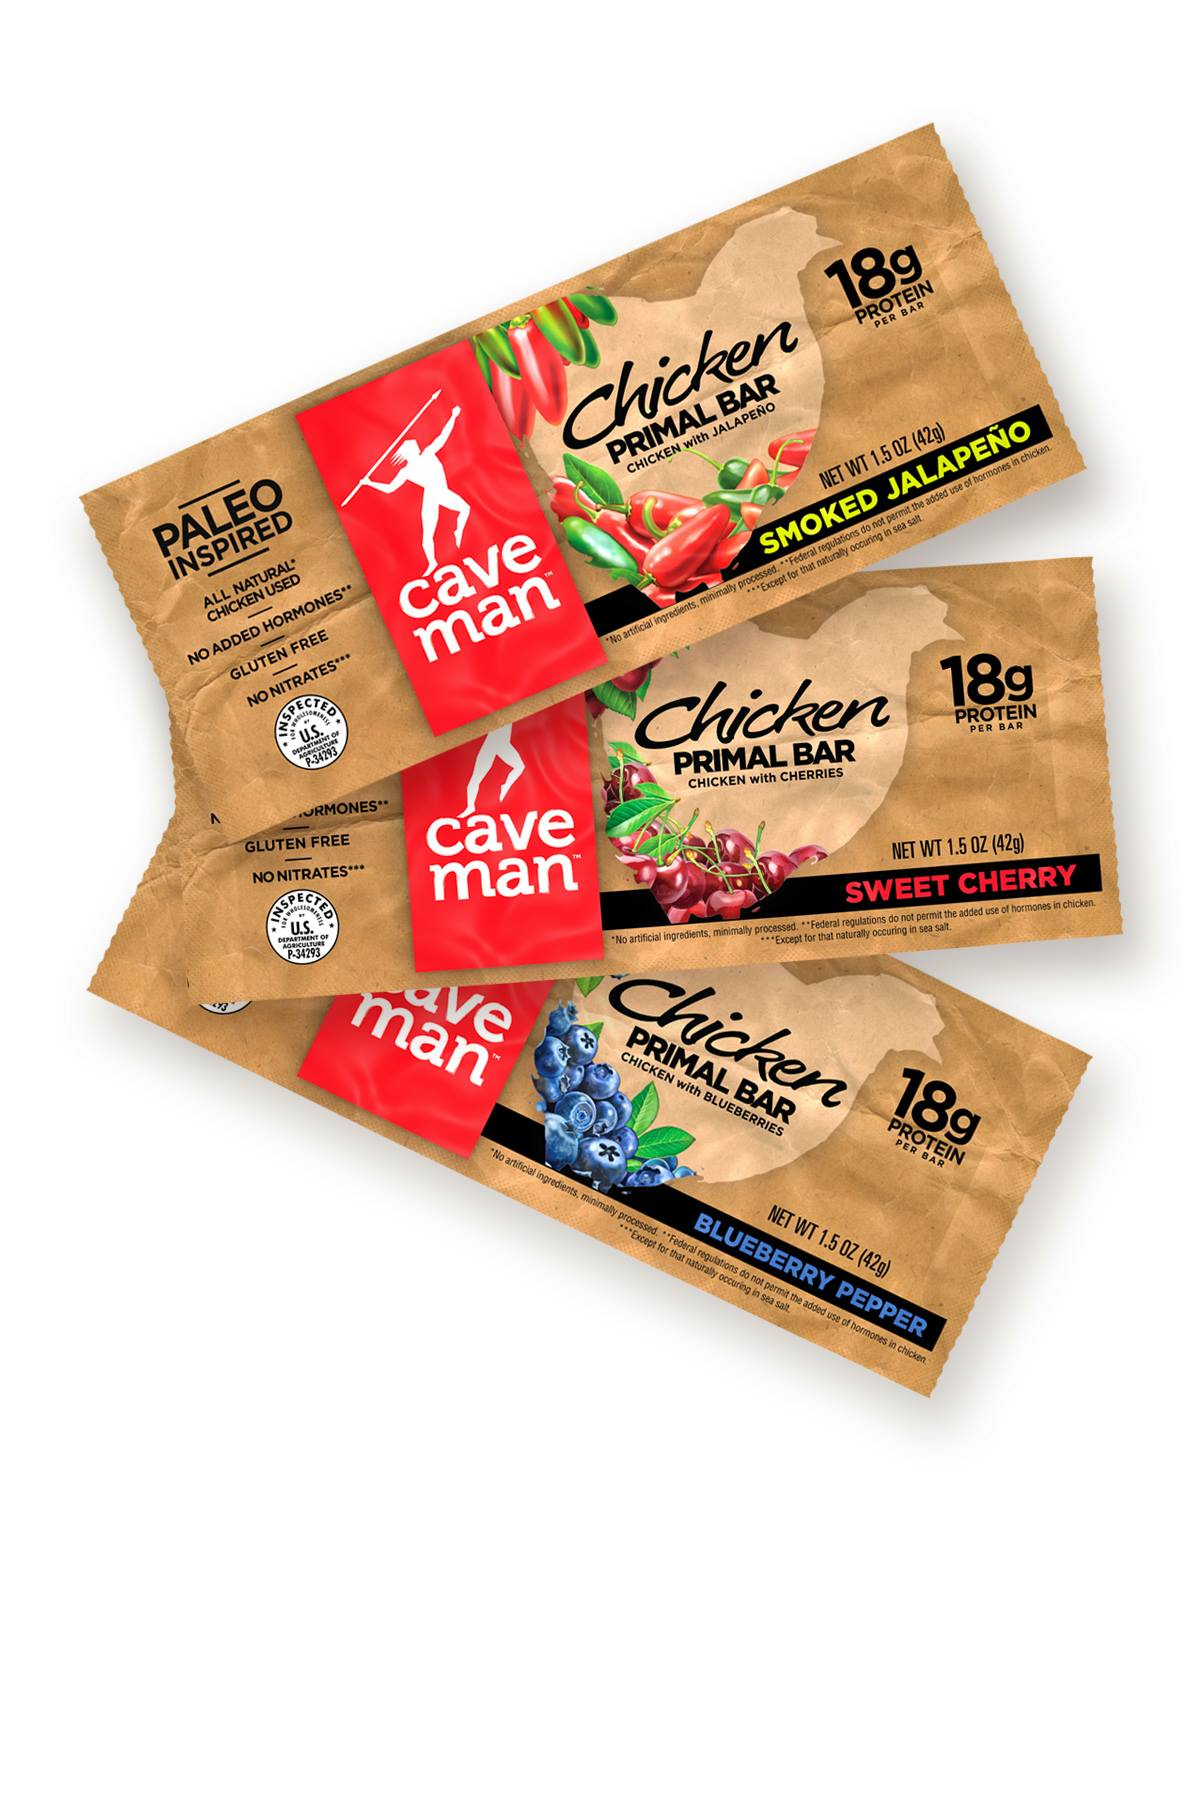 Best Paleo Bars and Powder in 2019 (1)